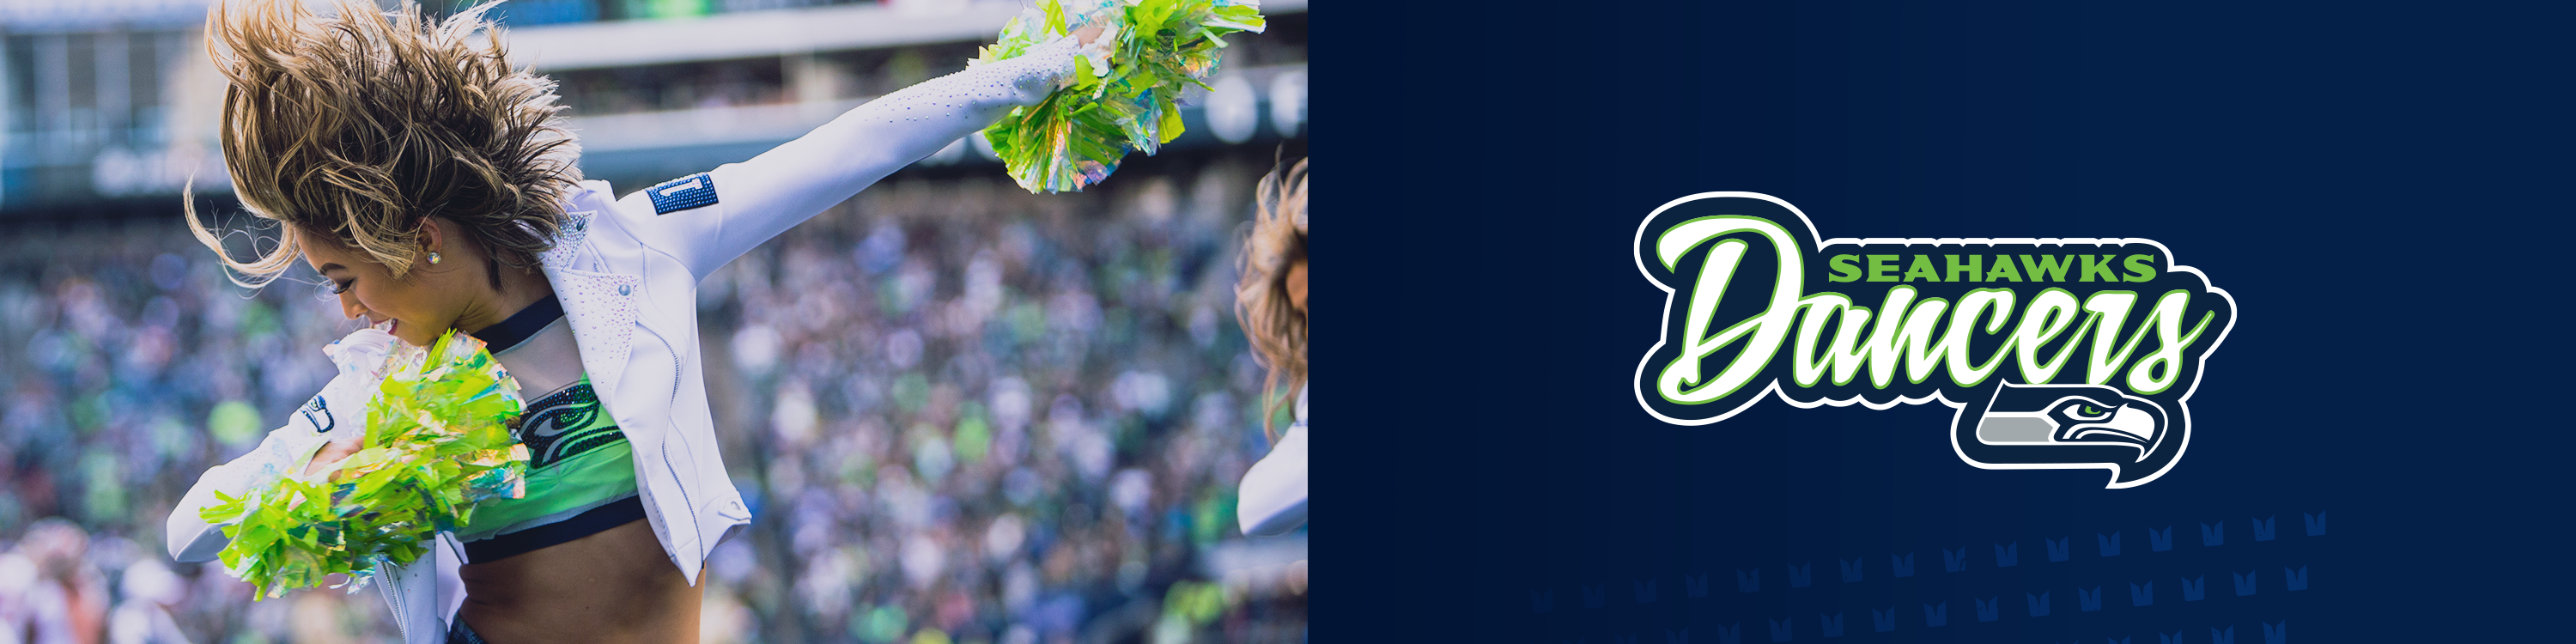 200508-seahawks-dancers-header3000x750